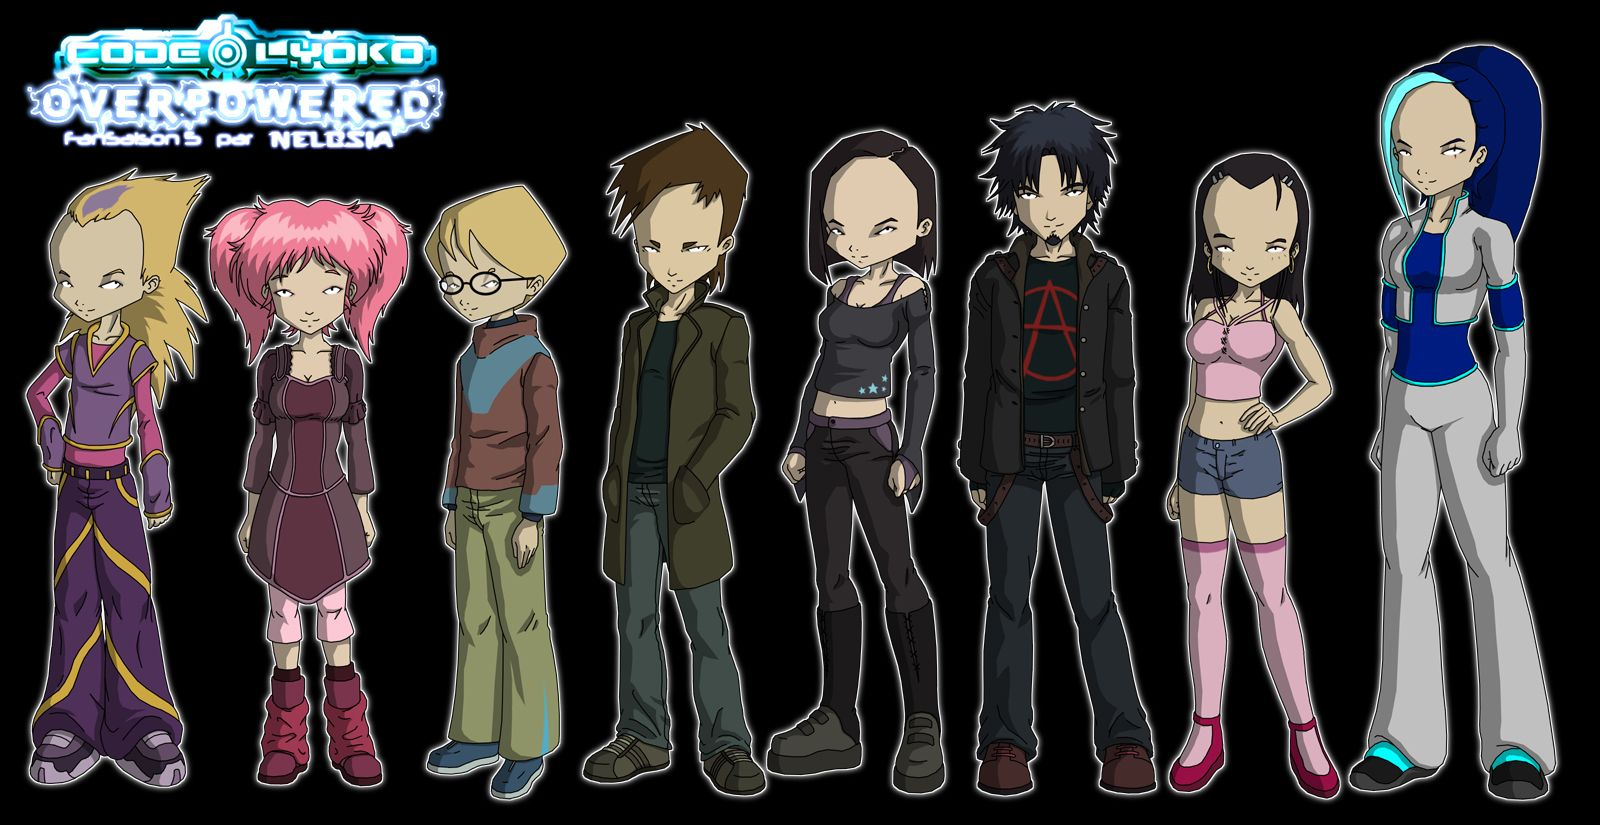 Code Lyoko Overpowered Is A Fan Created Fifth Season By